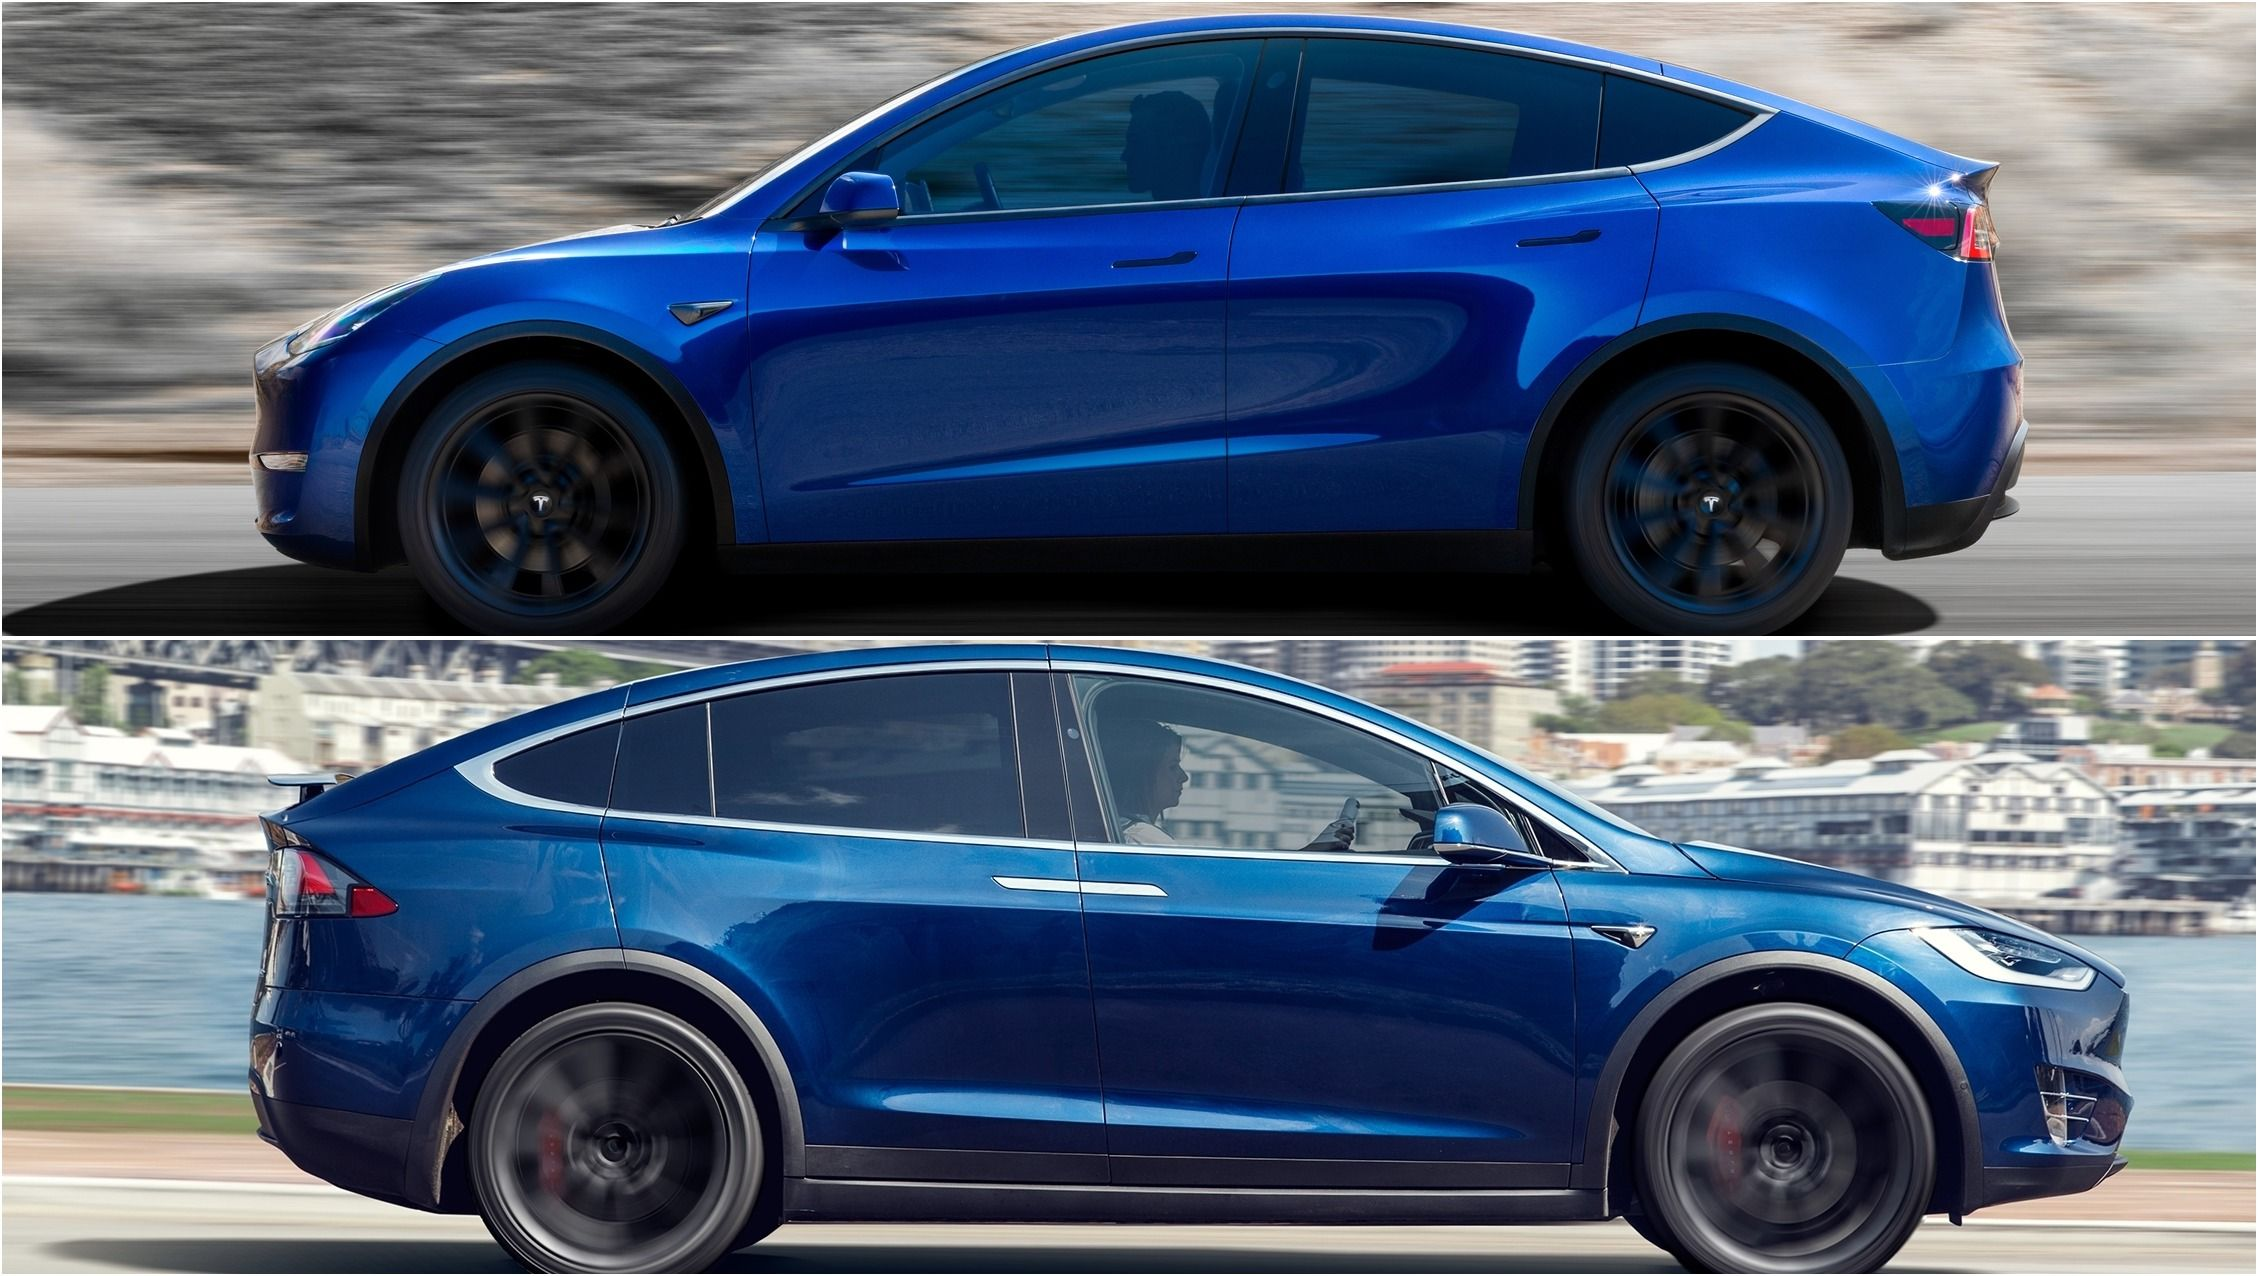 2020 Tesla Model Y Vs 2019 Tesla Model X Top Speed Tesla Model X Tesla Model Tesla